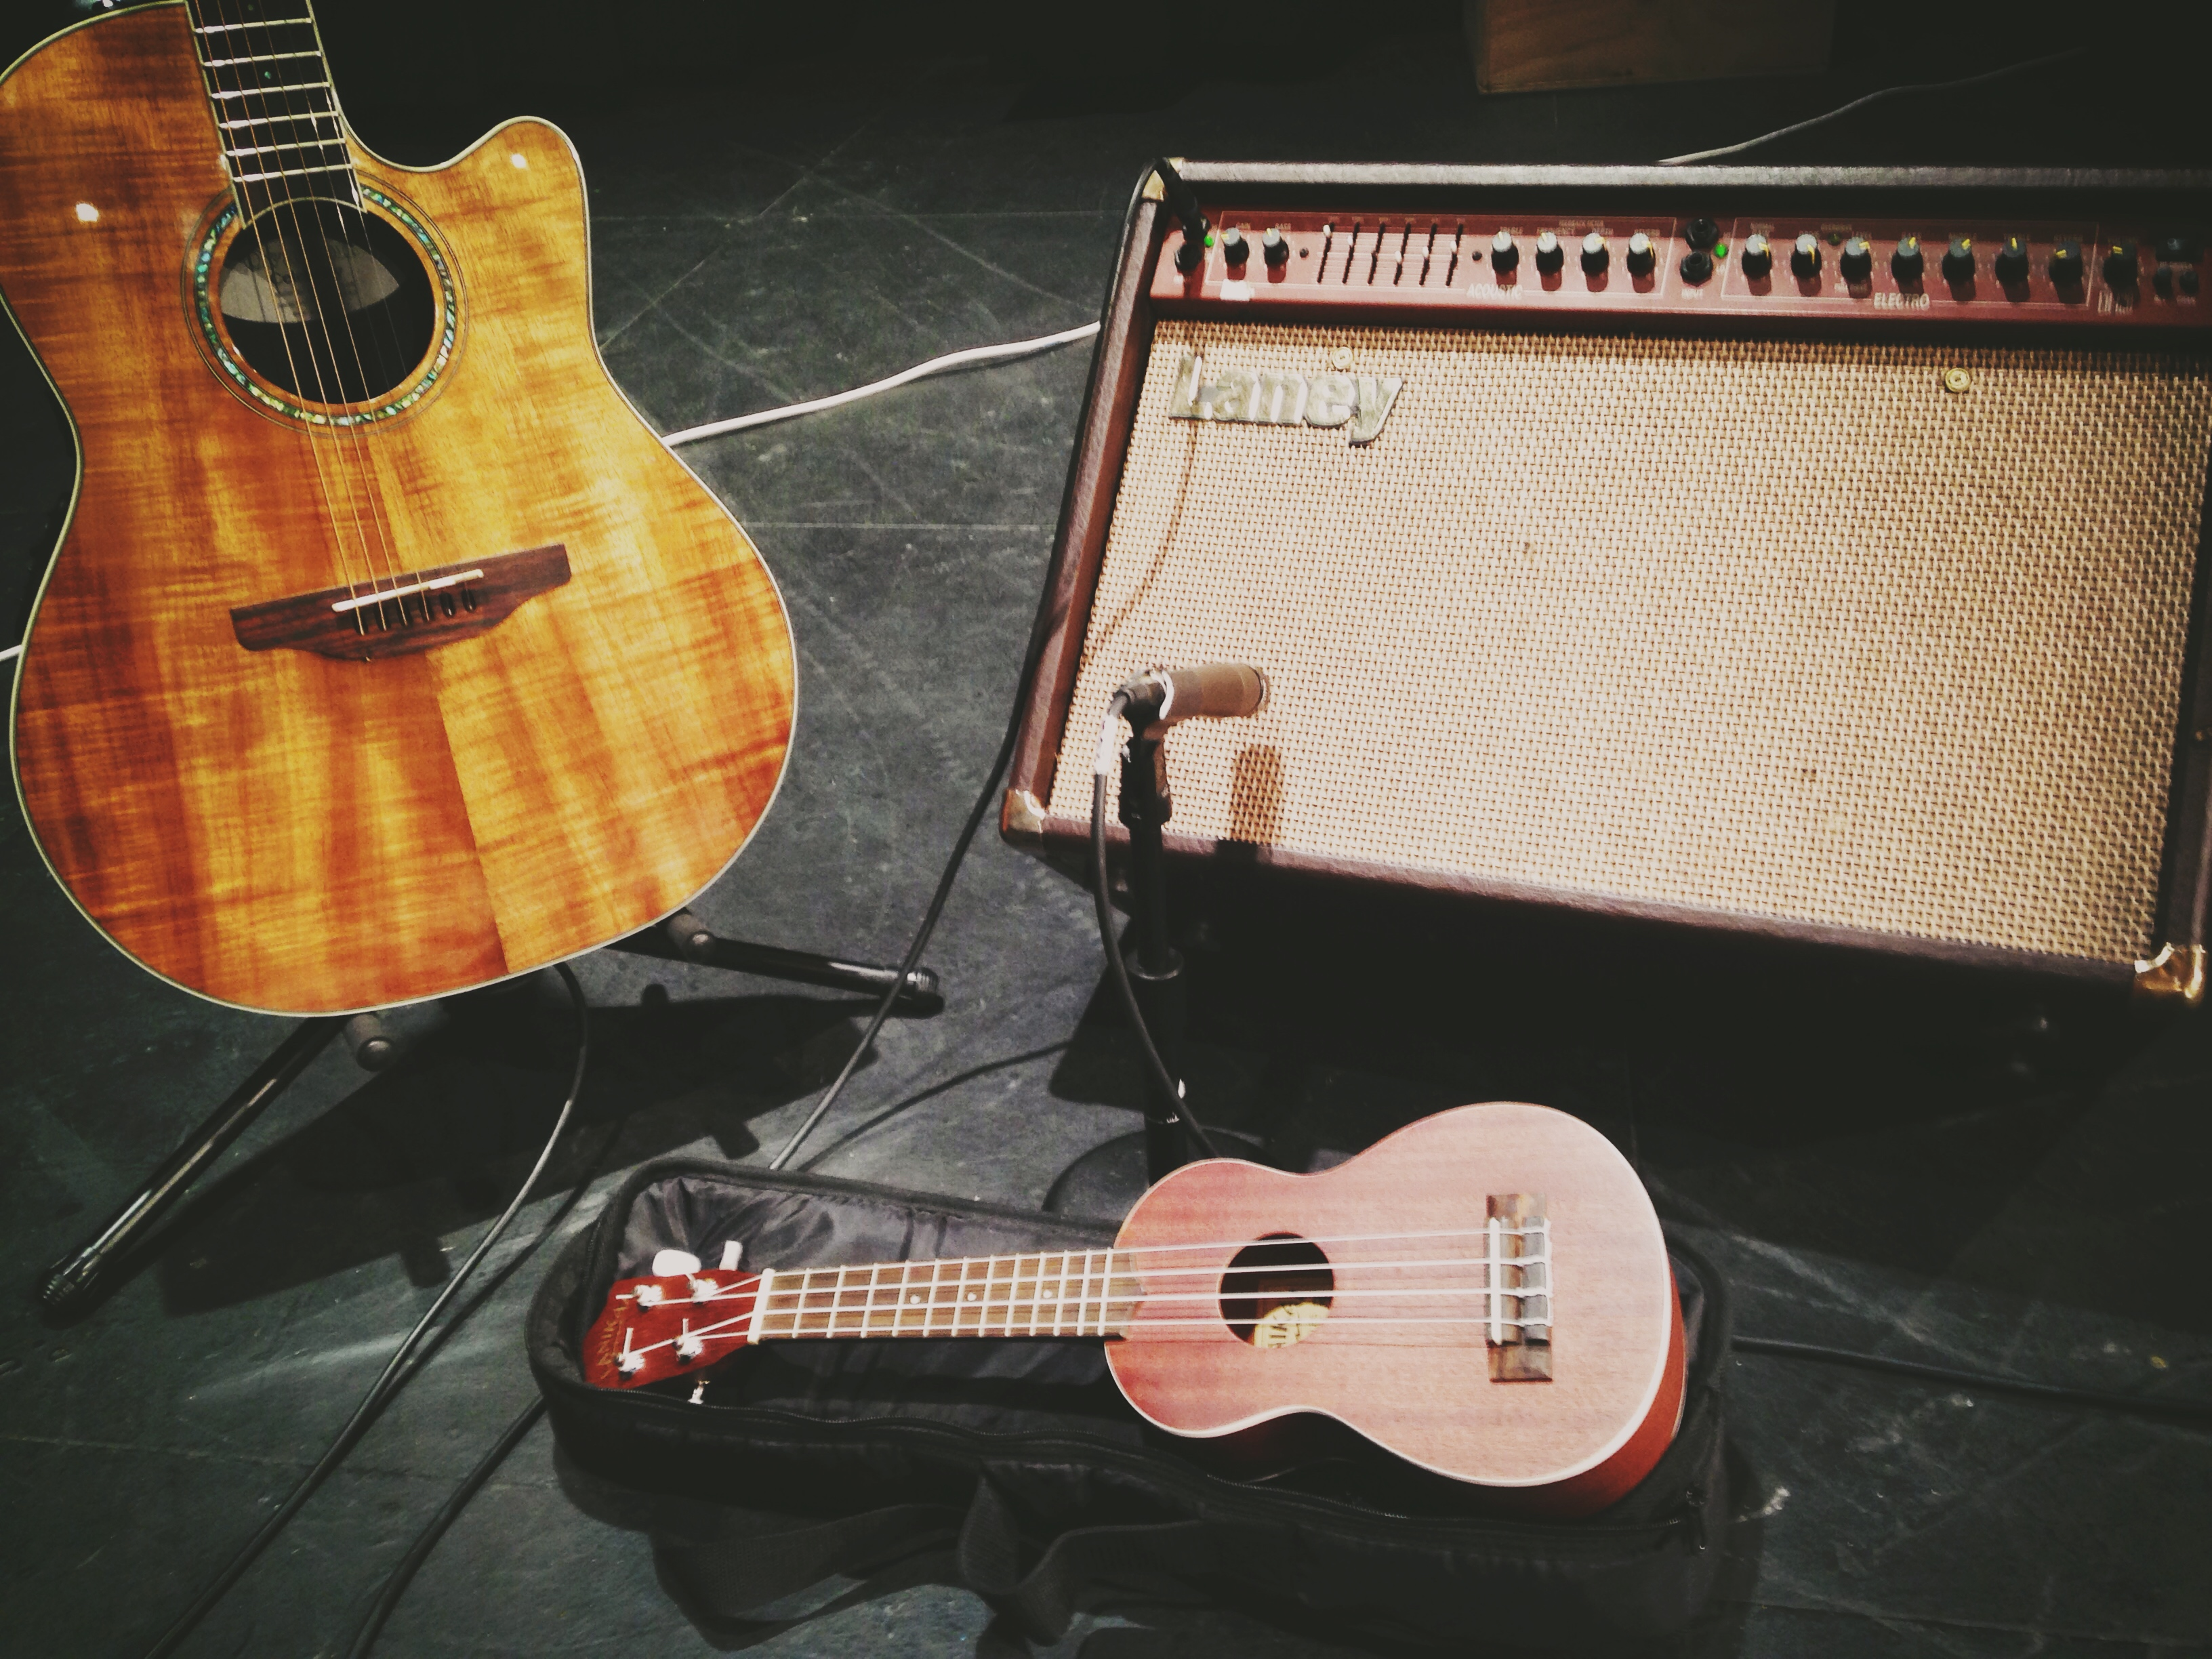 File:Ukulele, Guitar, and Laney amp on worship - 2014-12-21 (by ...